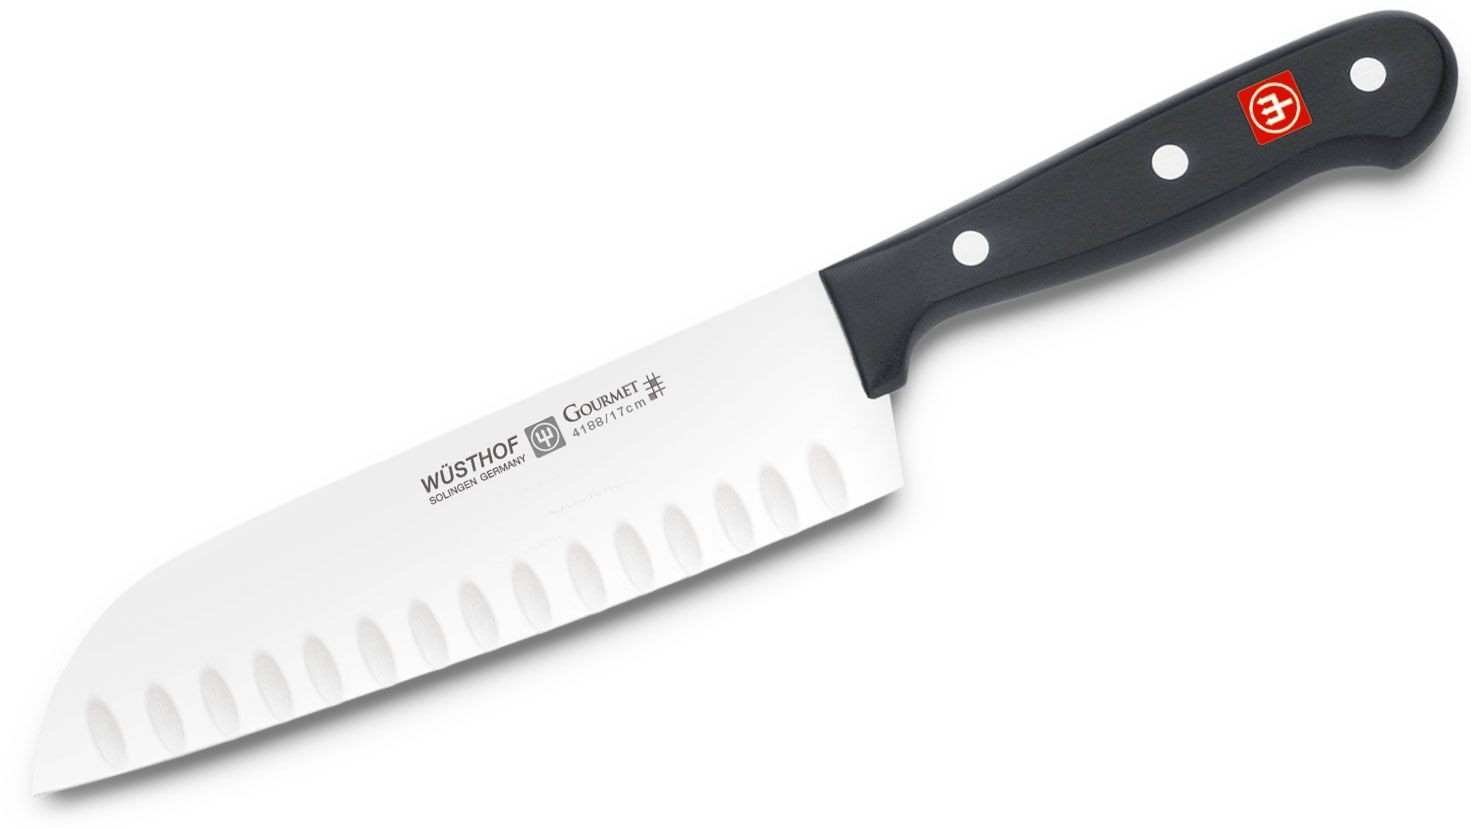 Wusthof Gourmet 7 inch Santoku Knife with Hollow Edge